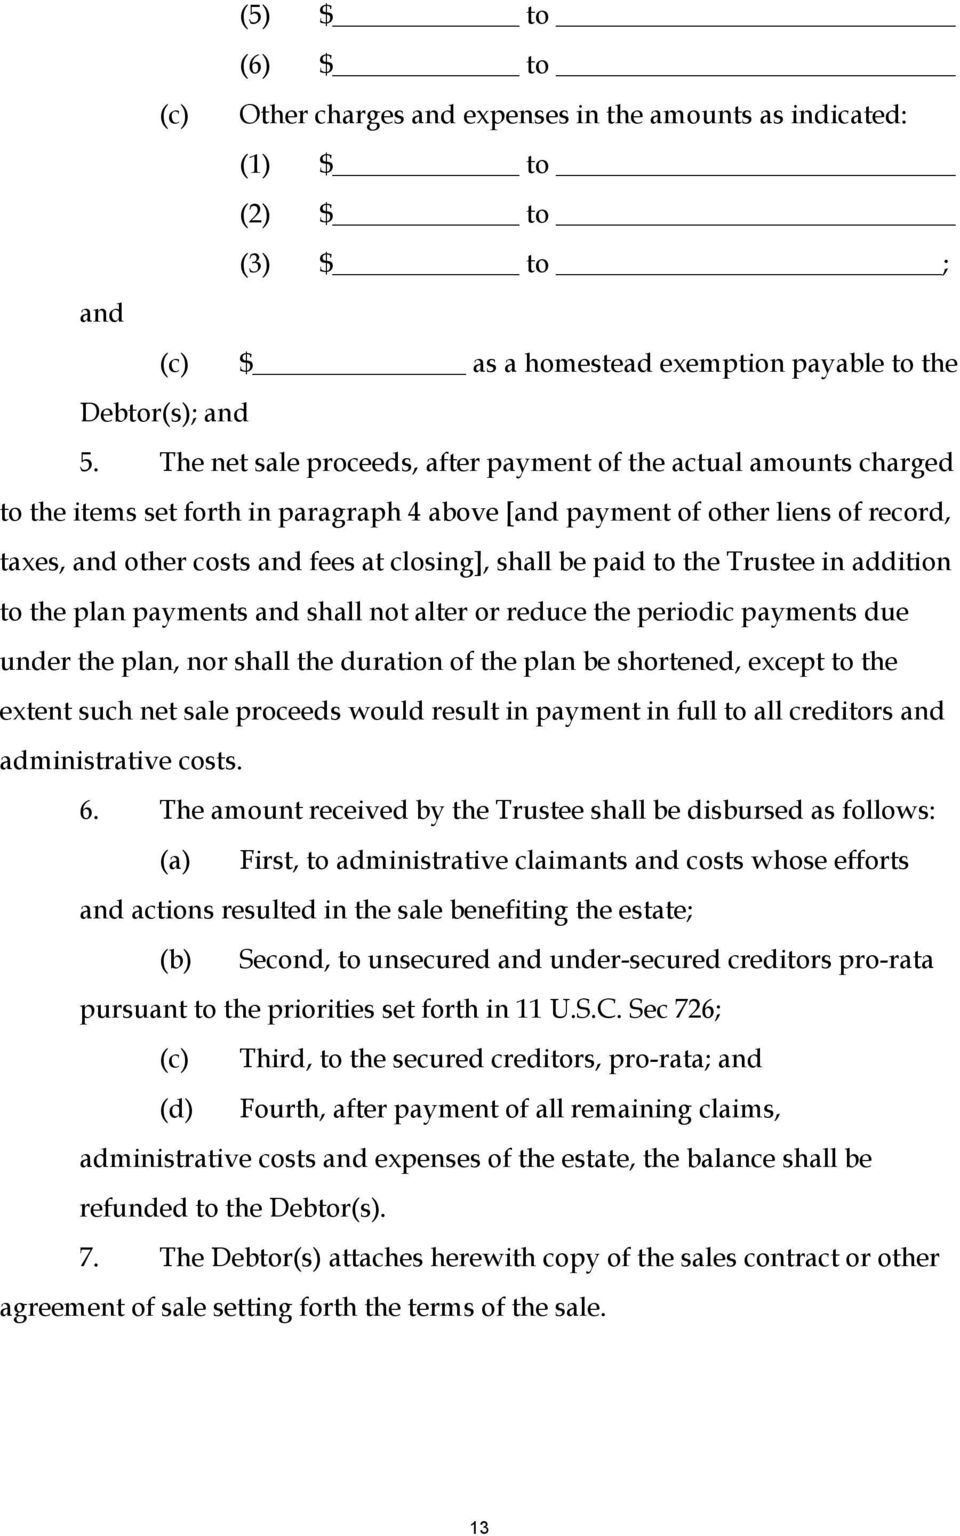 shall be paid to the Trustee in addition to the plan payments and shall not alter or reduce the periodic payments due under the plan, nor shall the duration of the plan be shortened, except to the